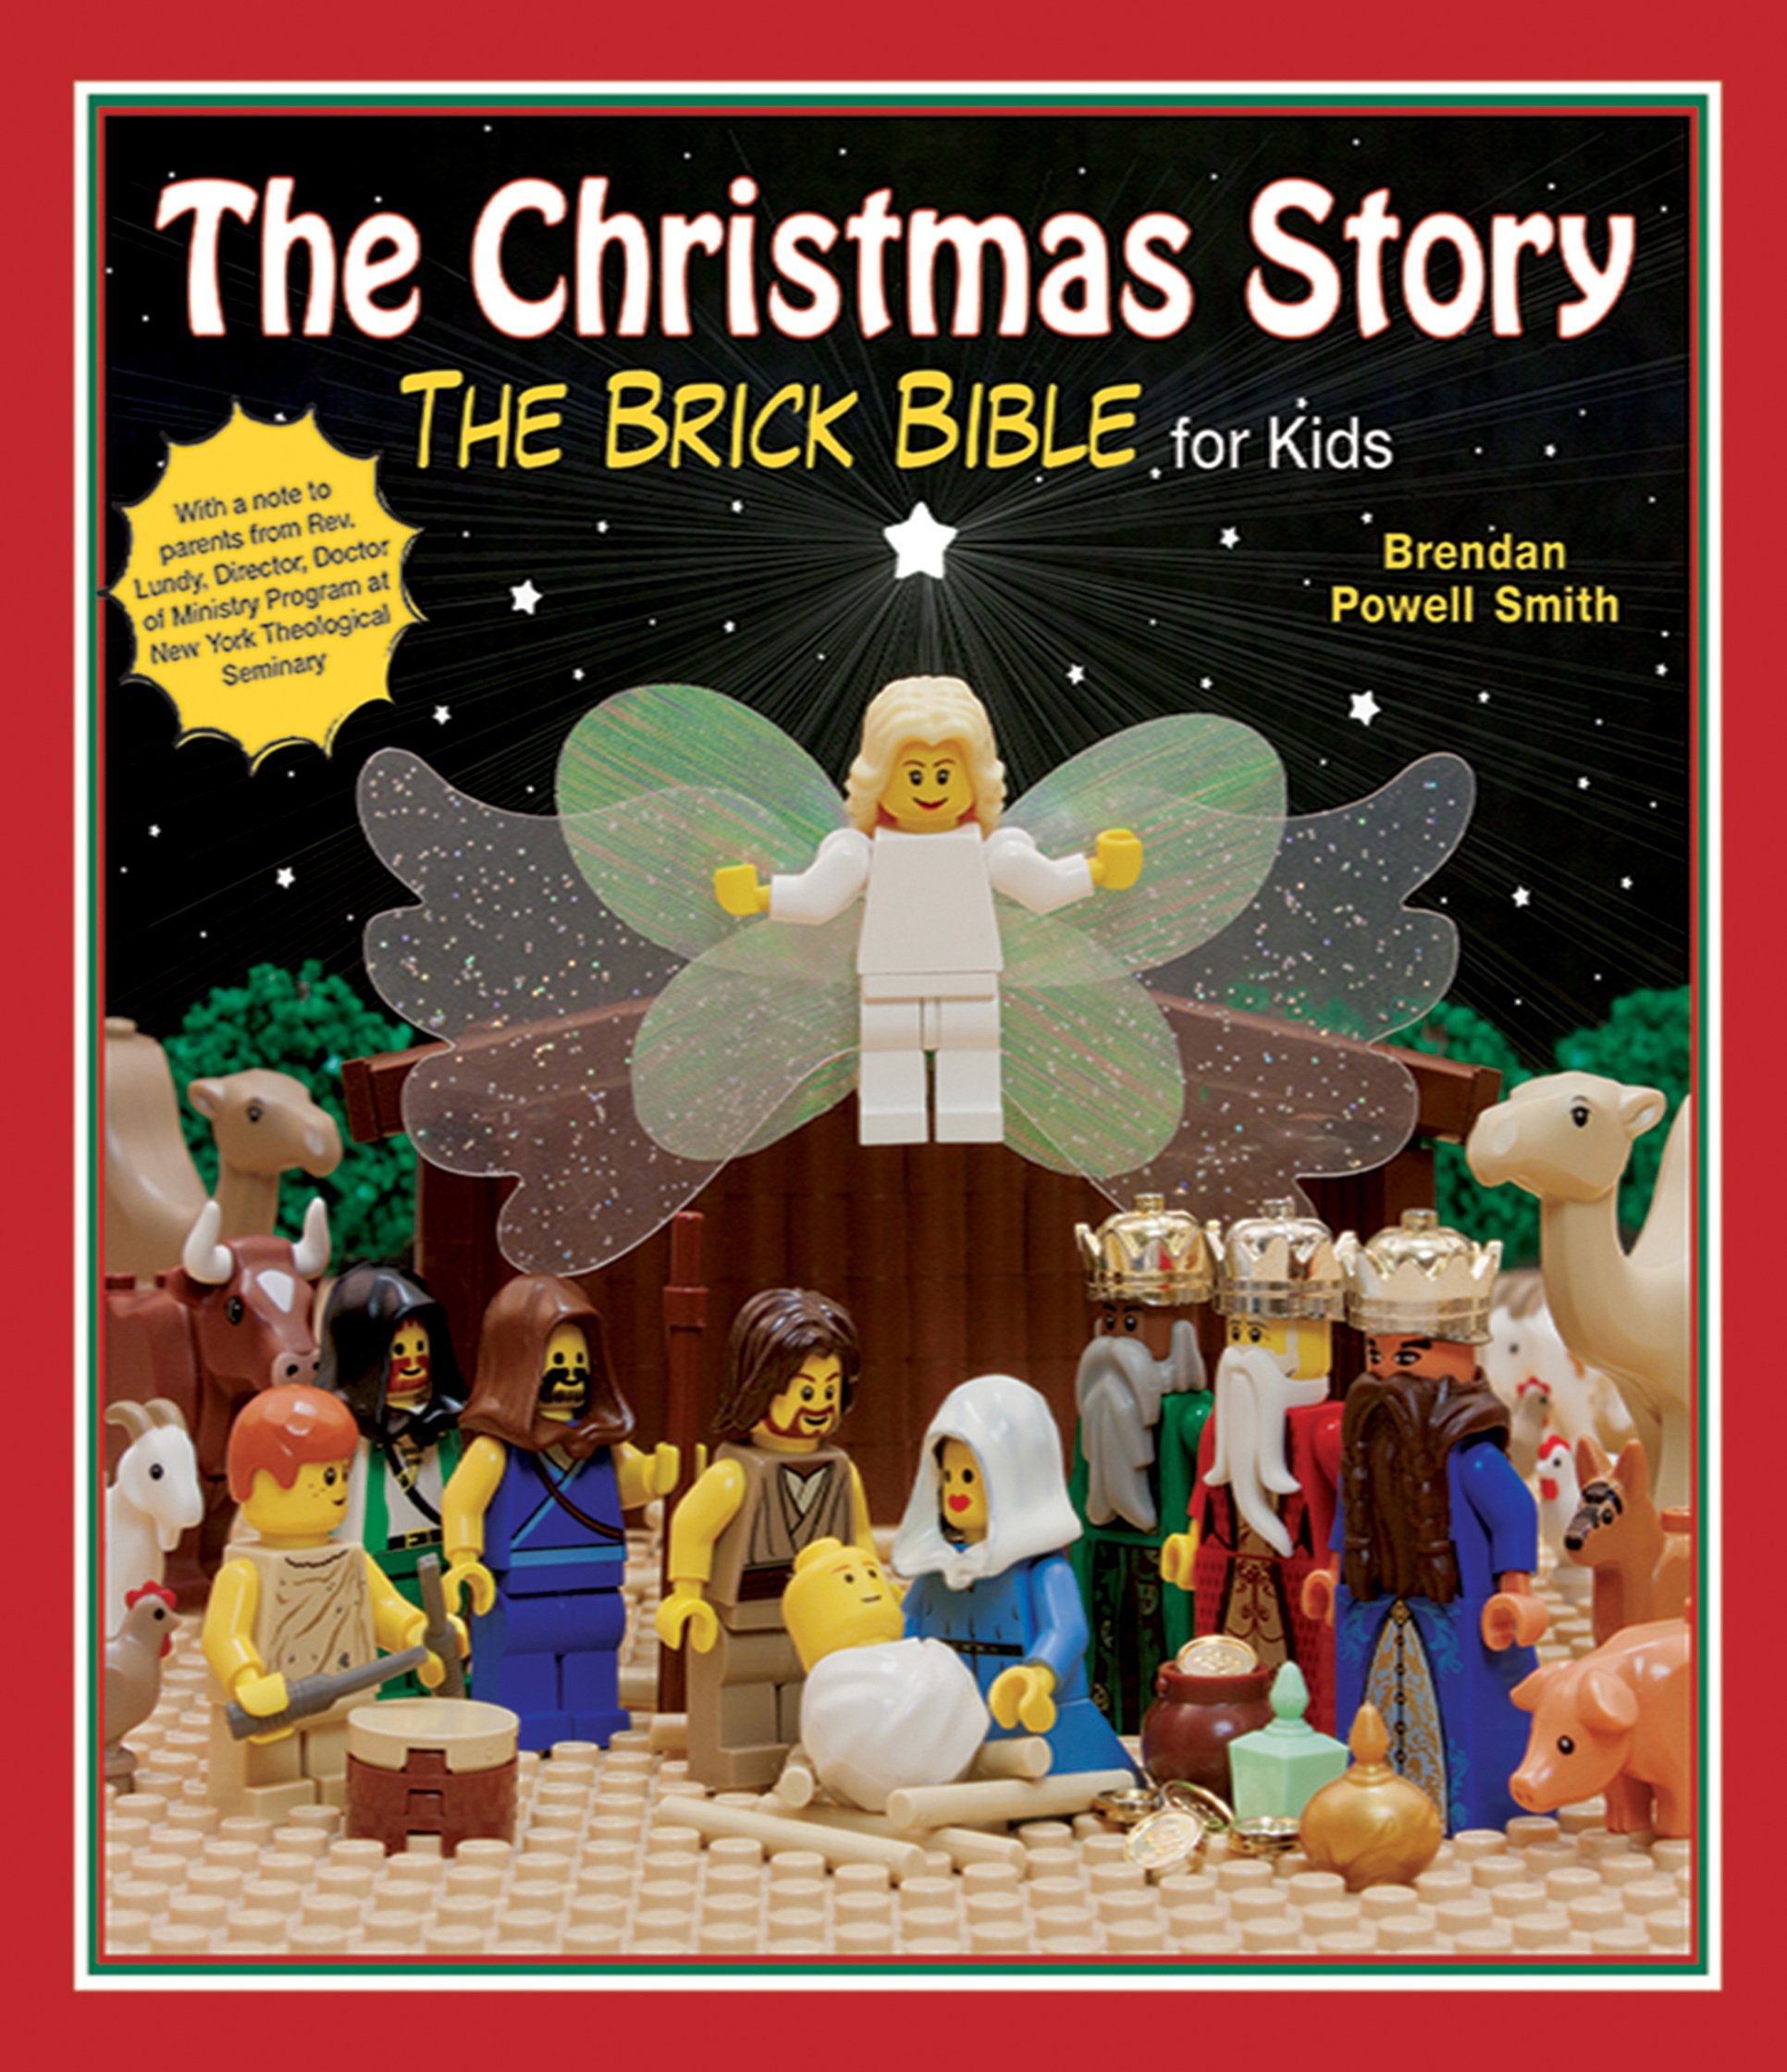 amazoncom the christmas story the brick bible for kids 9781620871737 brendan powell smith books